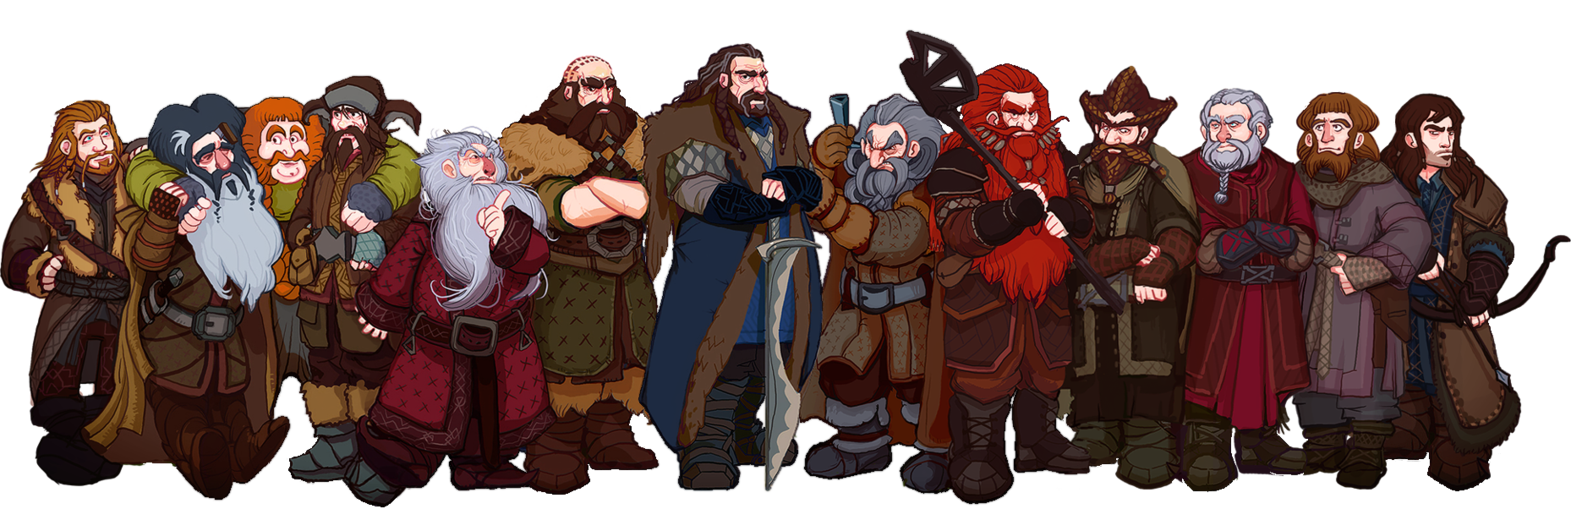 Drawing dwarves hobbit. The thorin and company svg freeuse